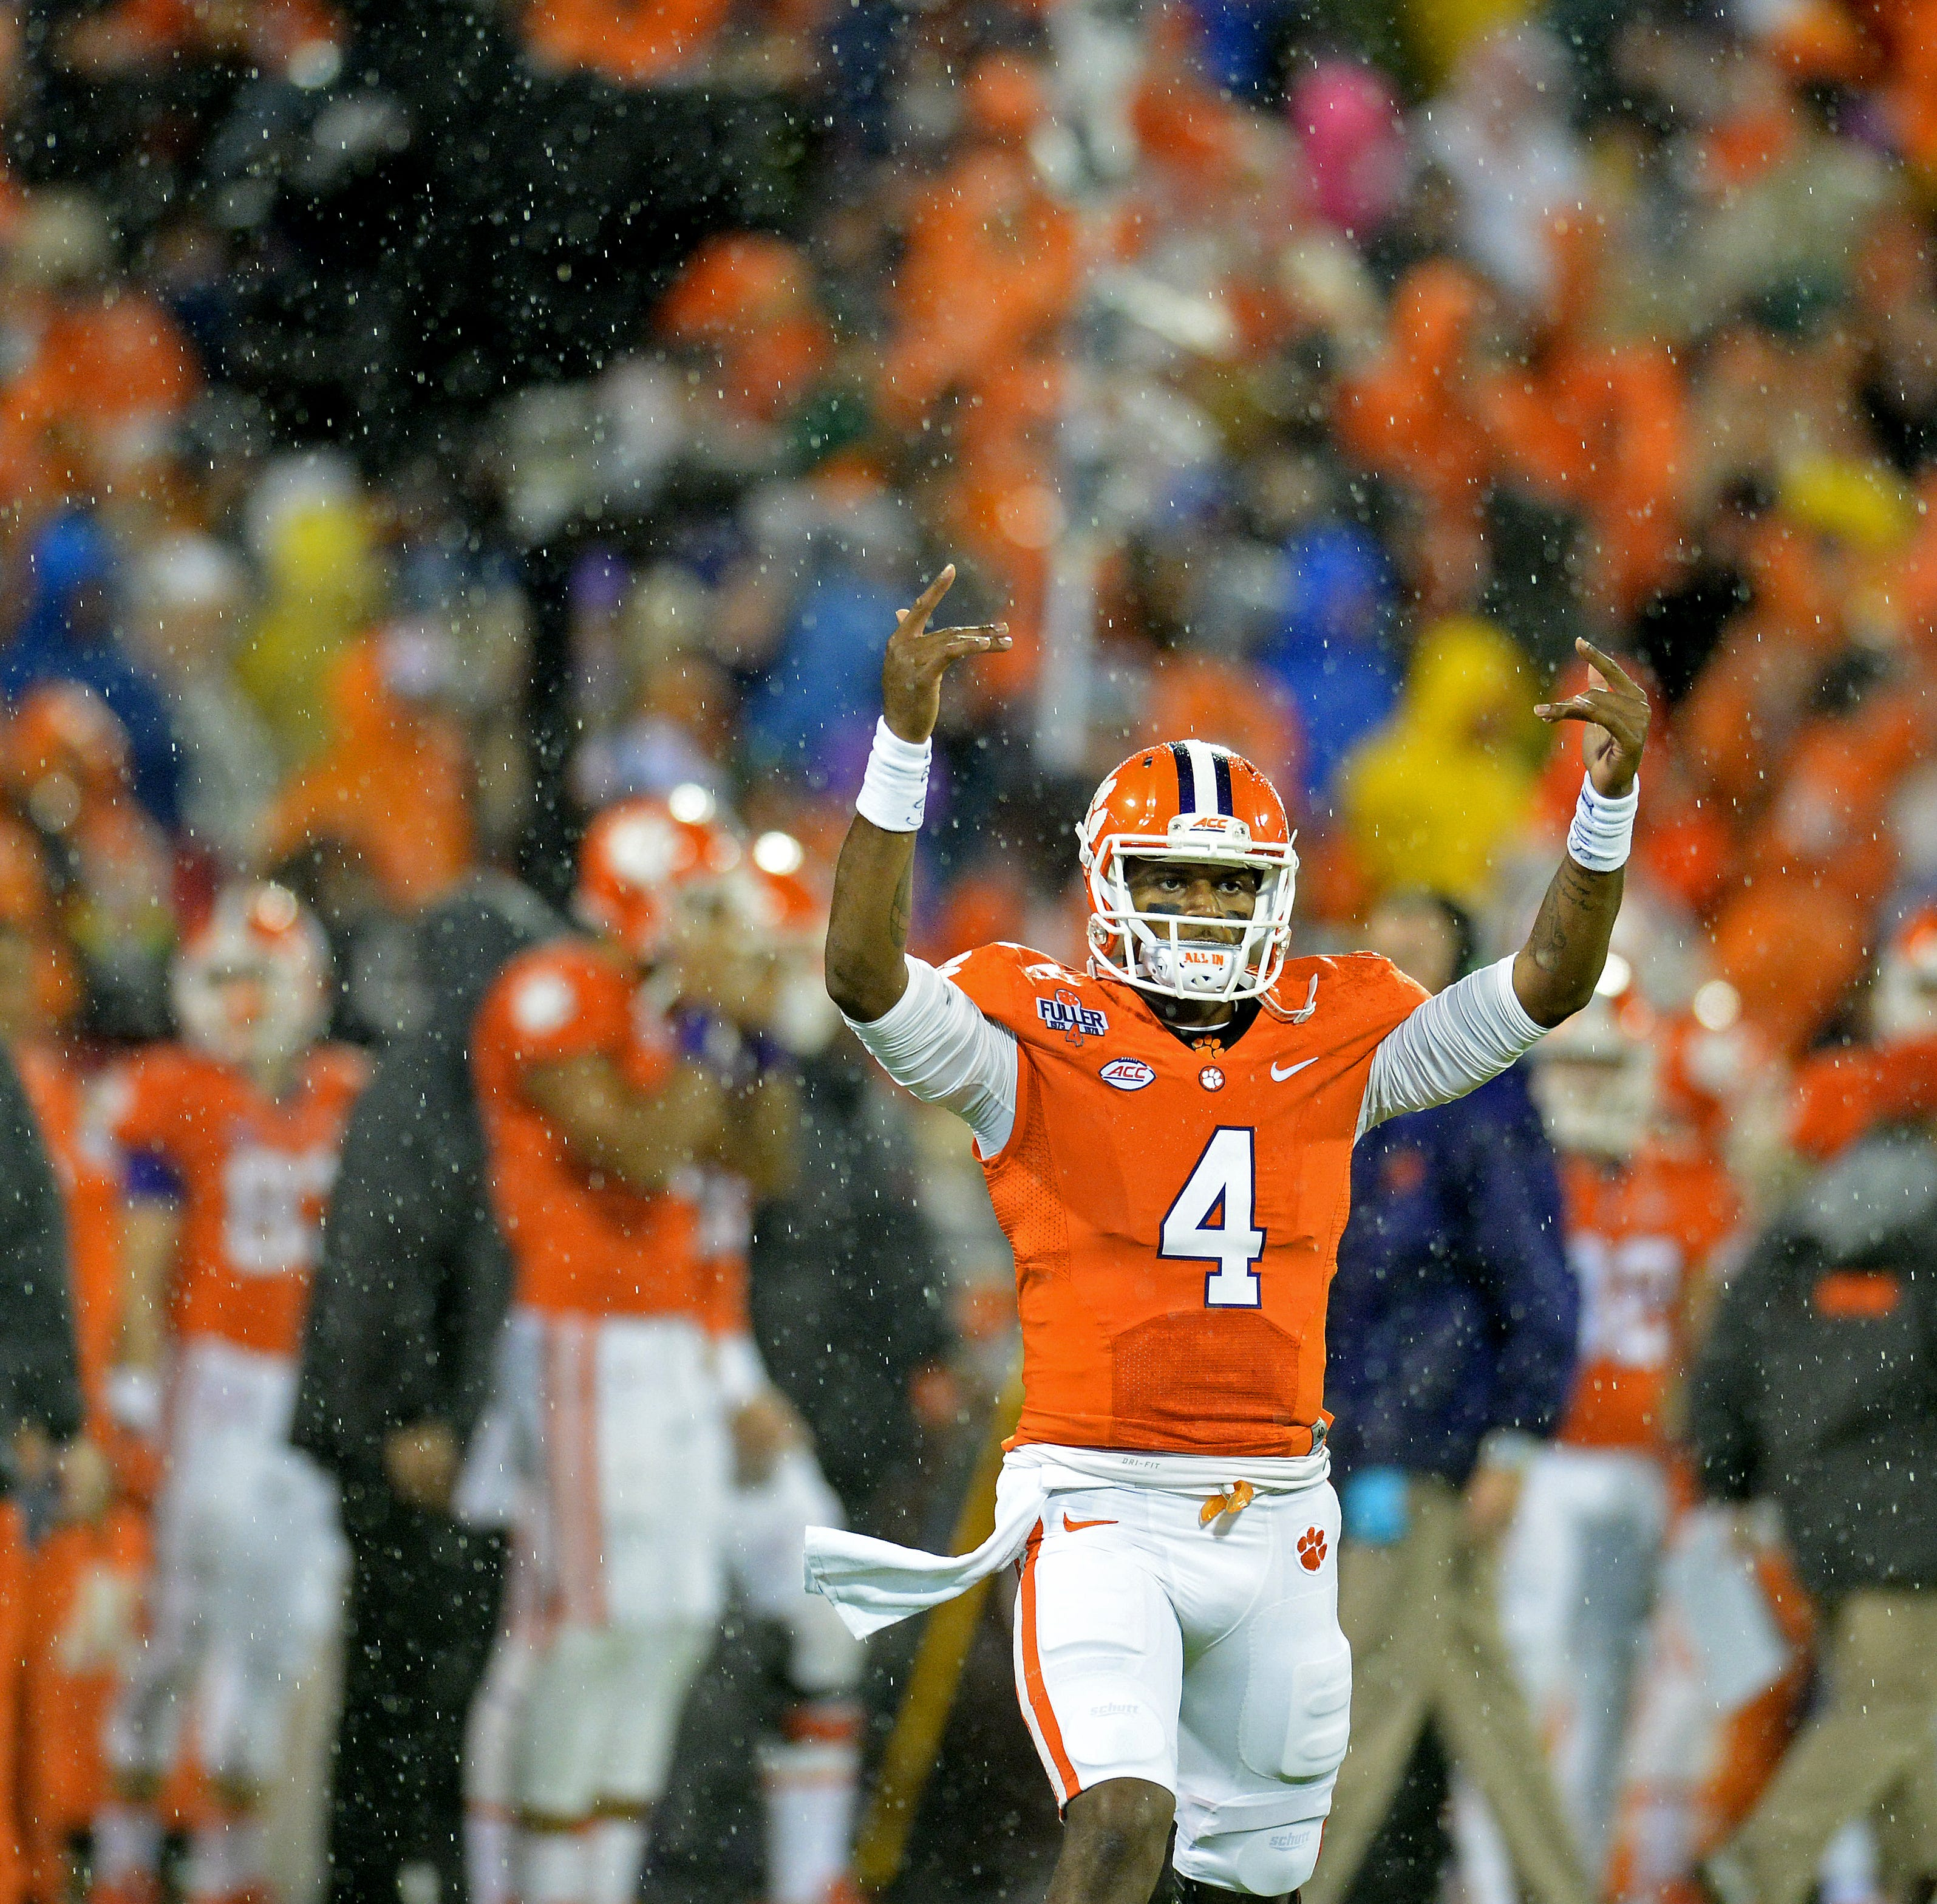 Former Clemson quarterback Deshaun Watson target of racial post by school superintendent